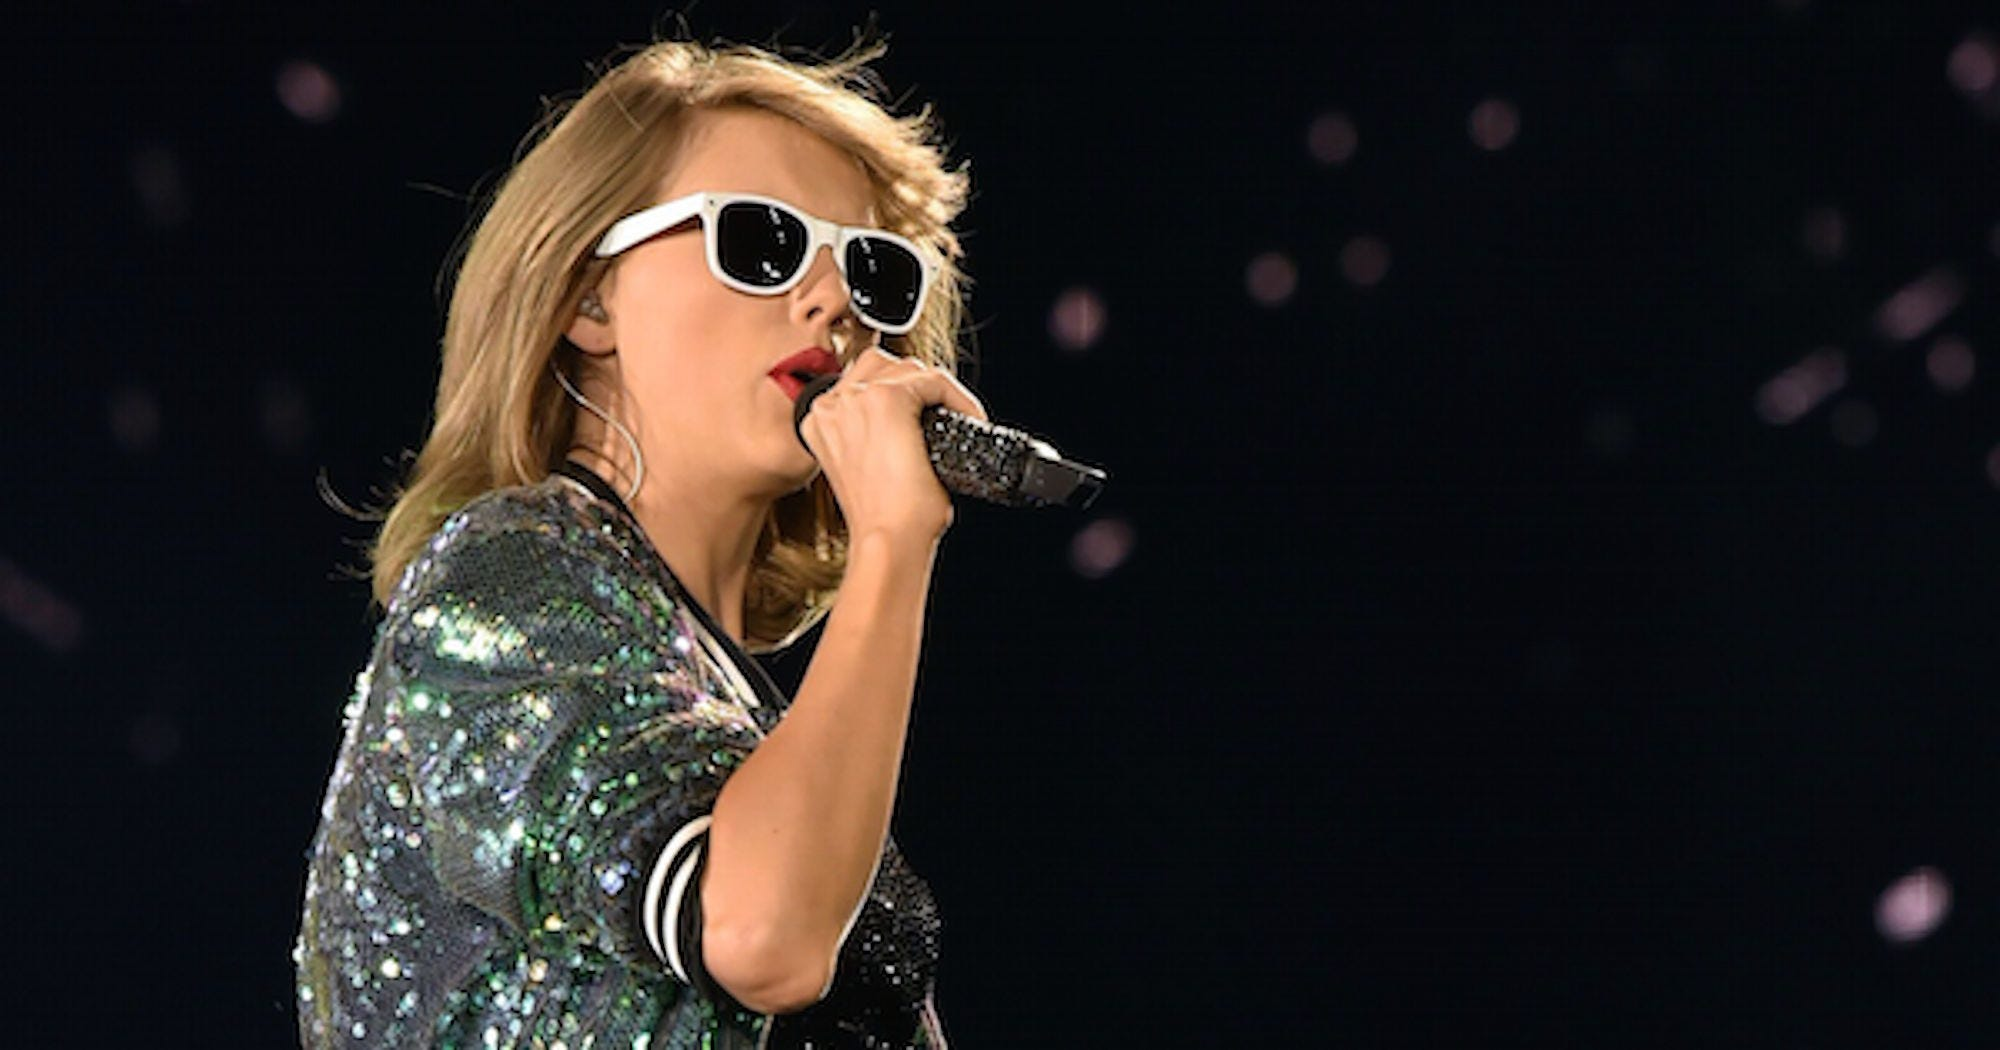 Is This What Tipsy Taylor Swift Is Actually Like?